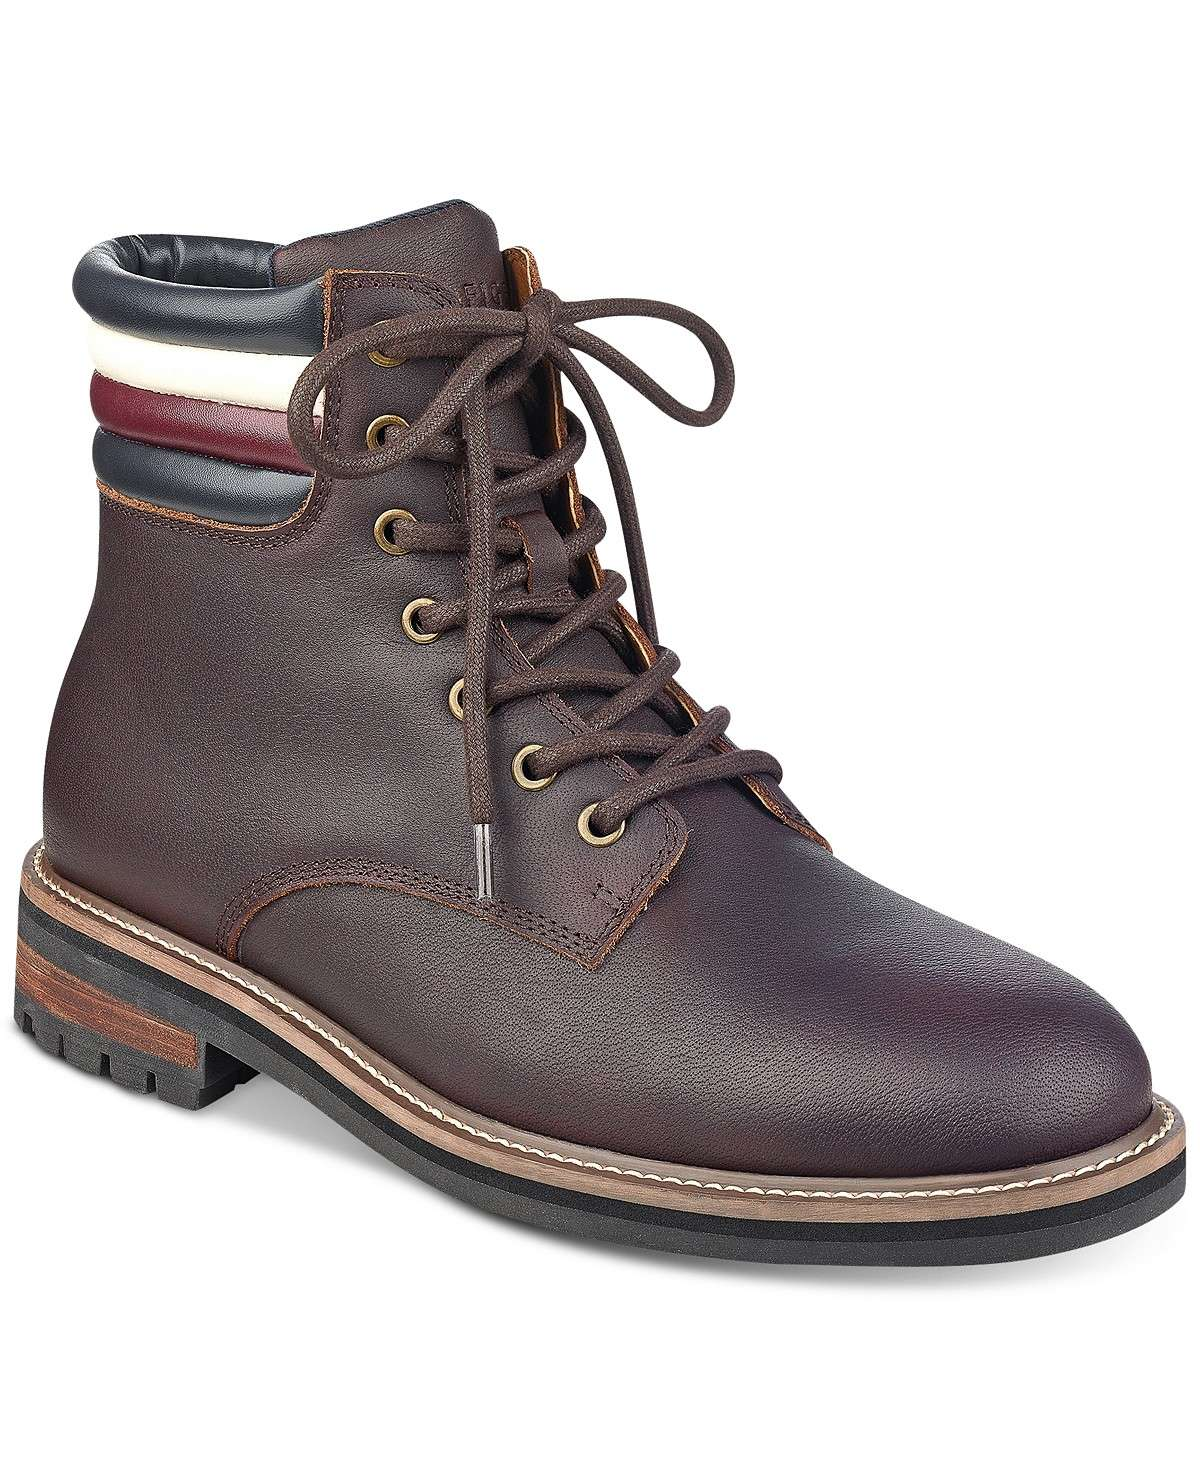 c882dbab6361 Tommy Hilfiger Men s Halle Lace-Up Lug Sole Boots  34.96 was  175 80% OFF